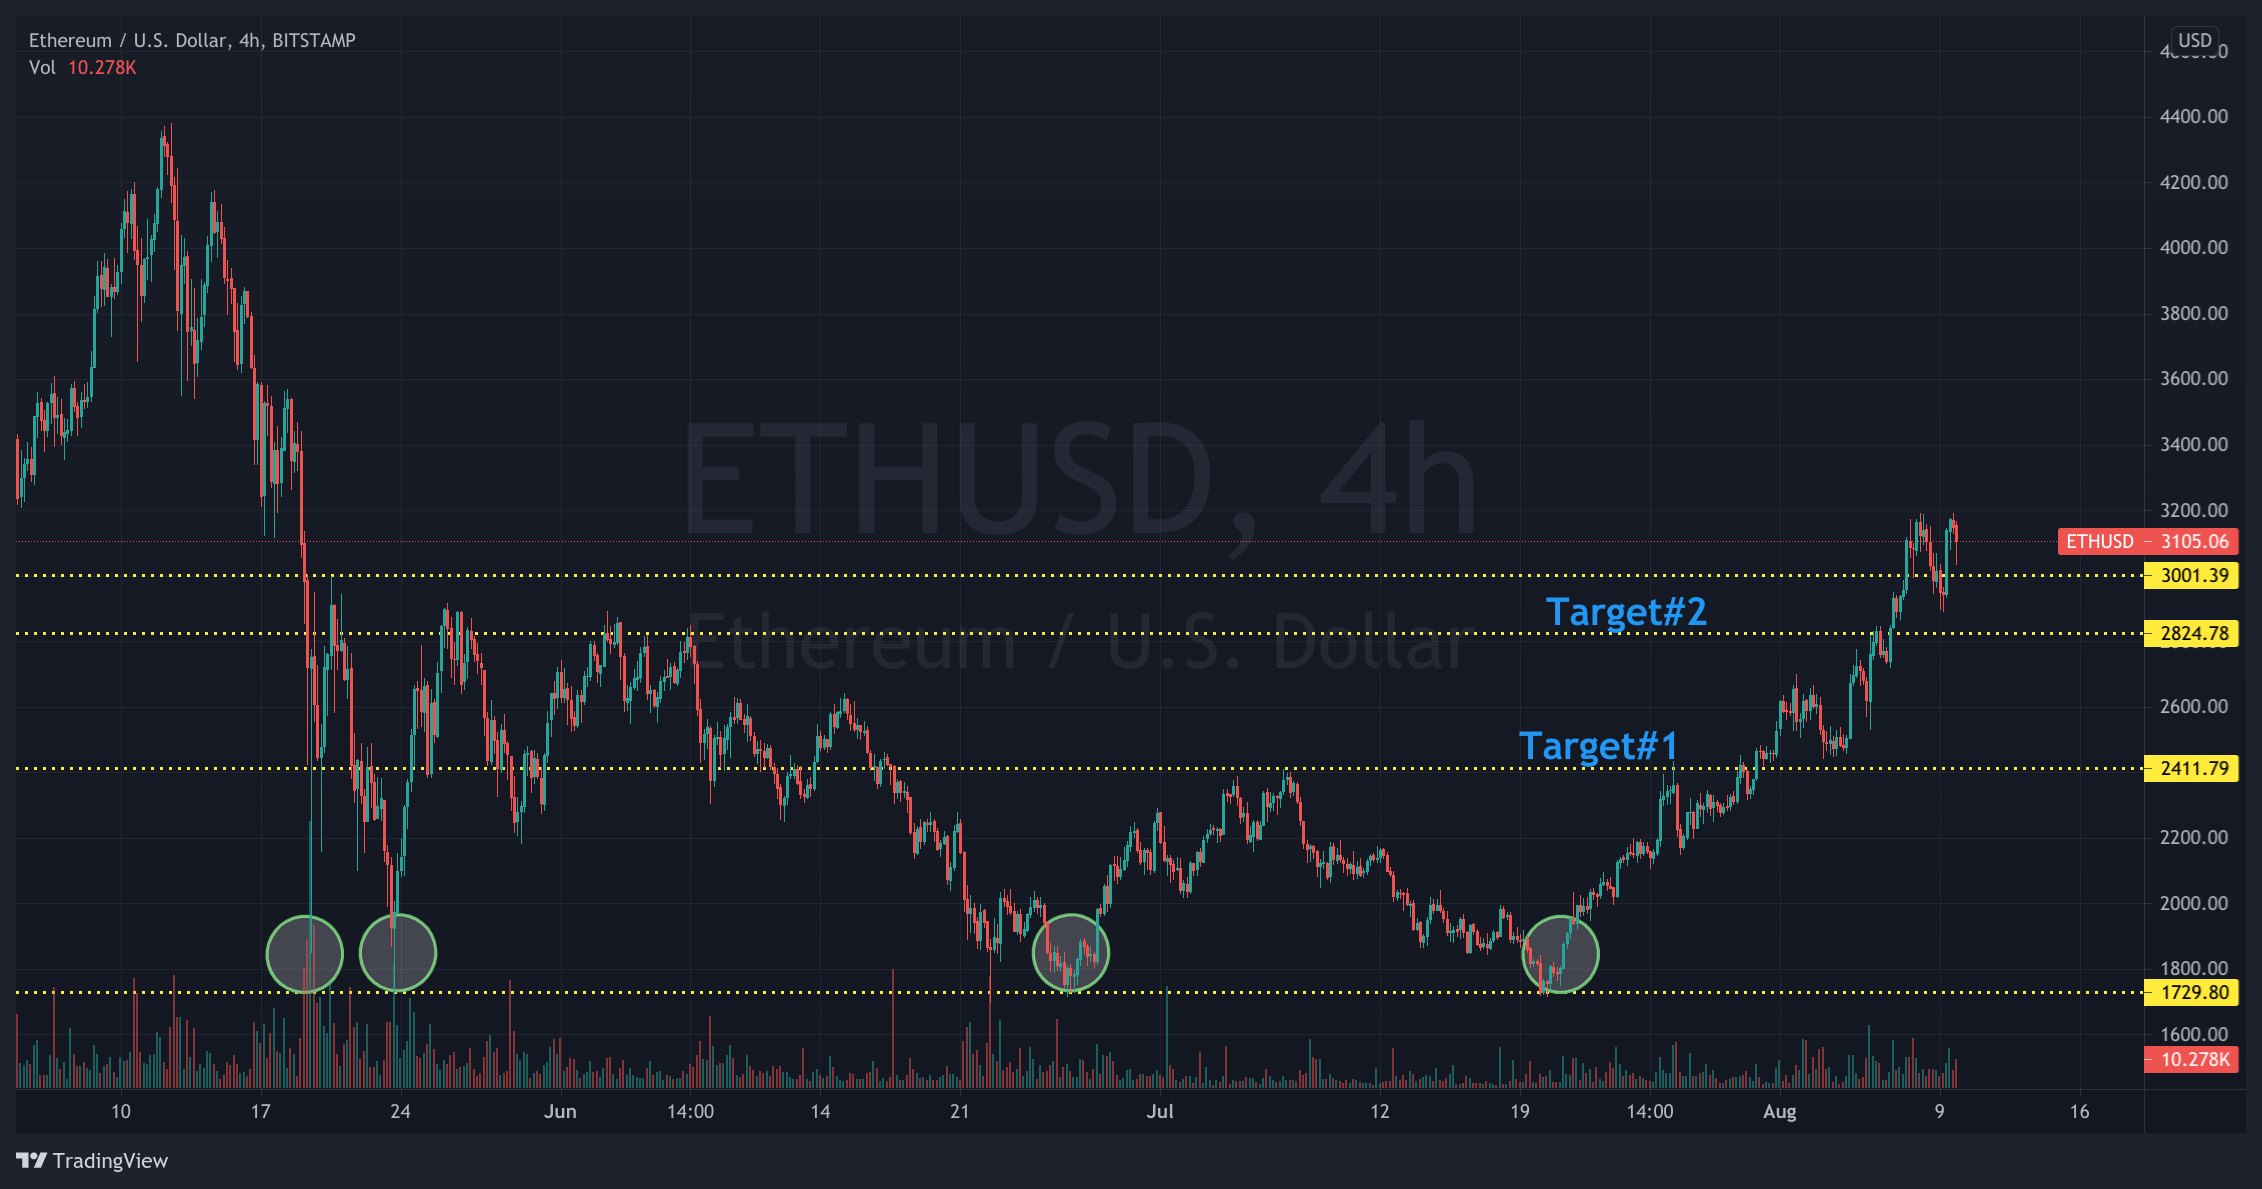 Ethereum Price Prediction - ETH/USD 4-hours chart showing previous BUYS for Ether